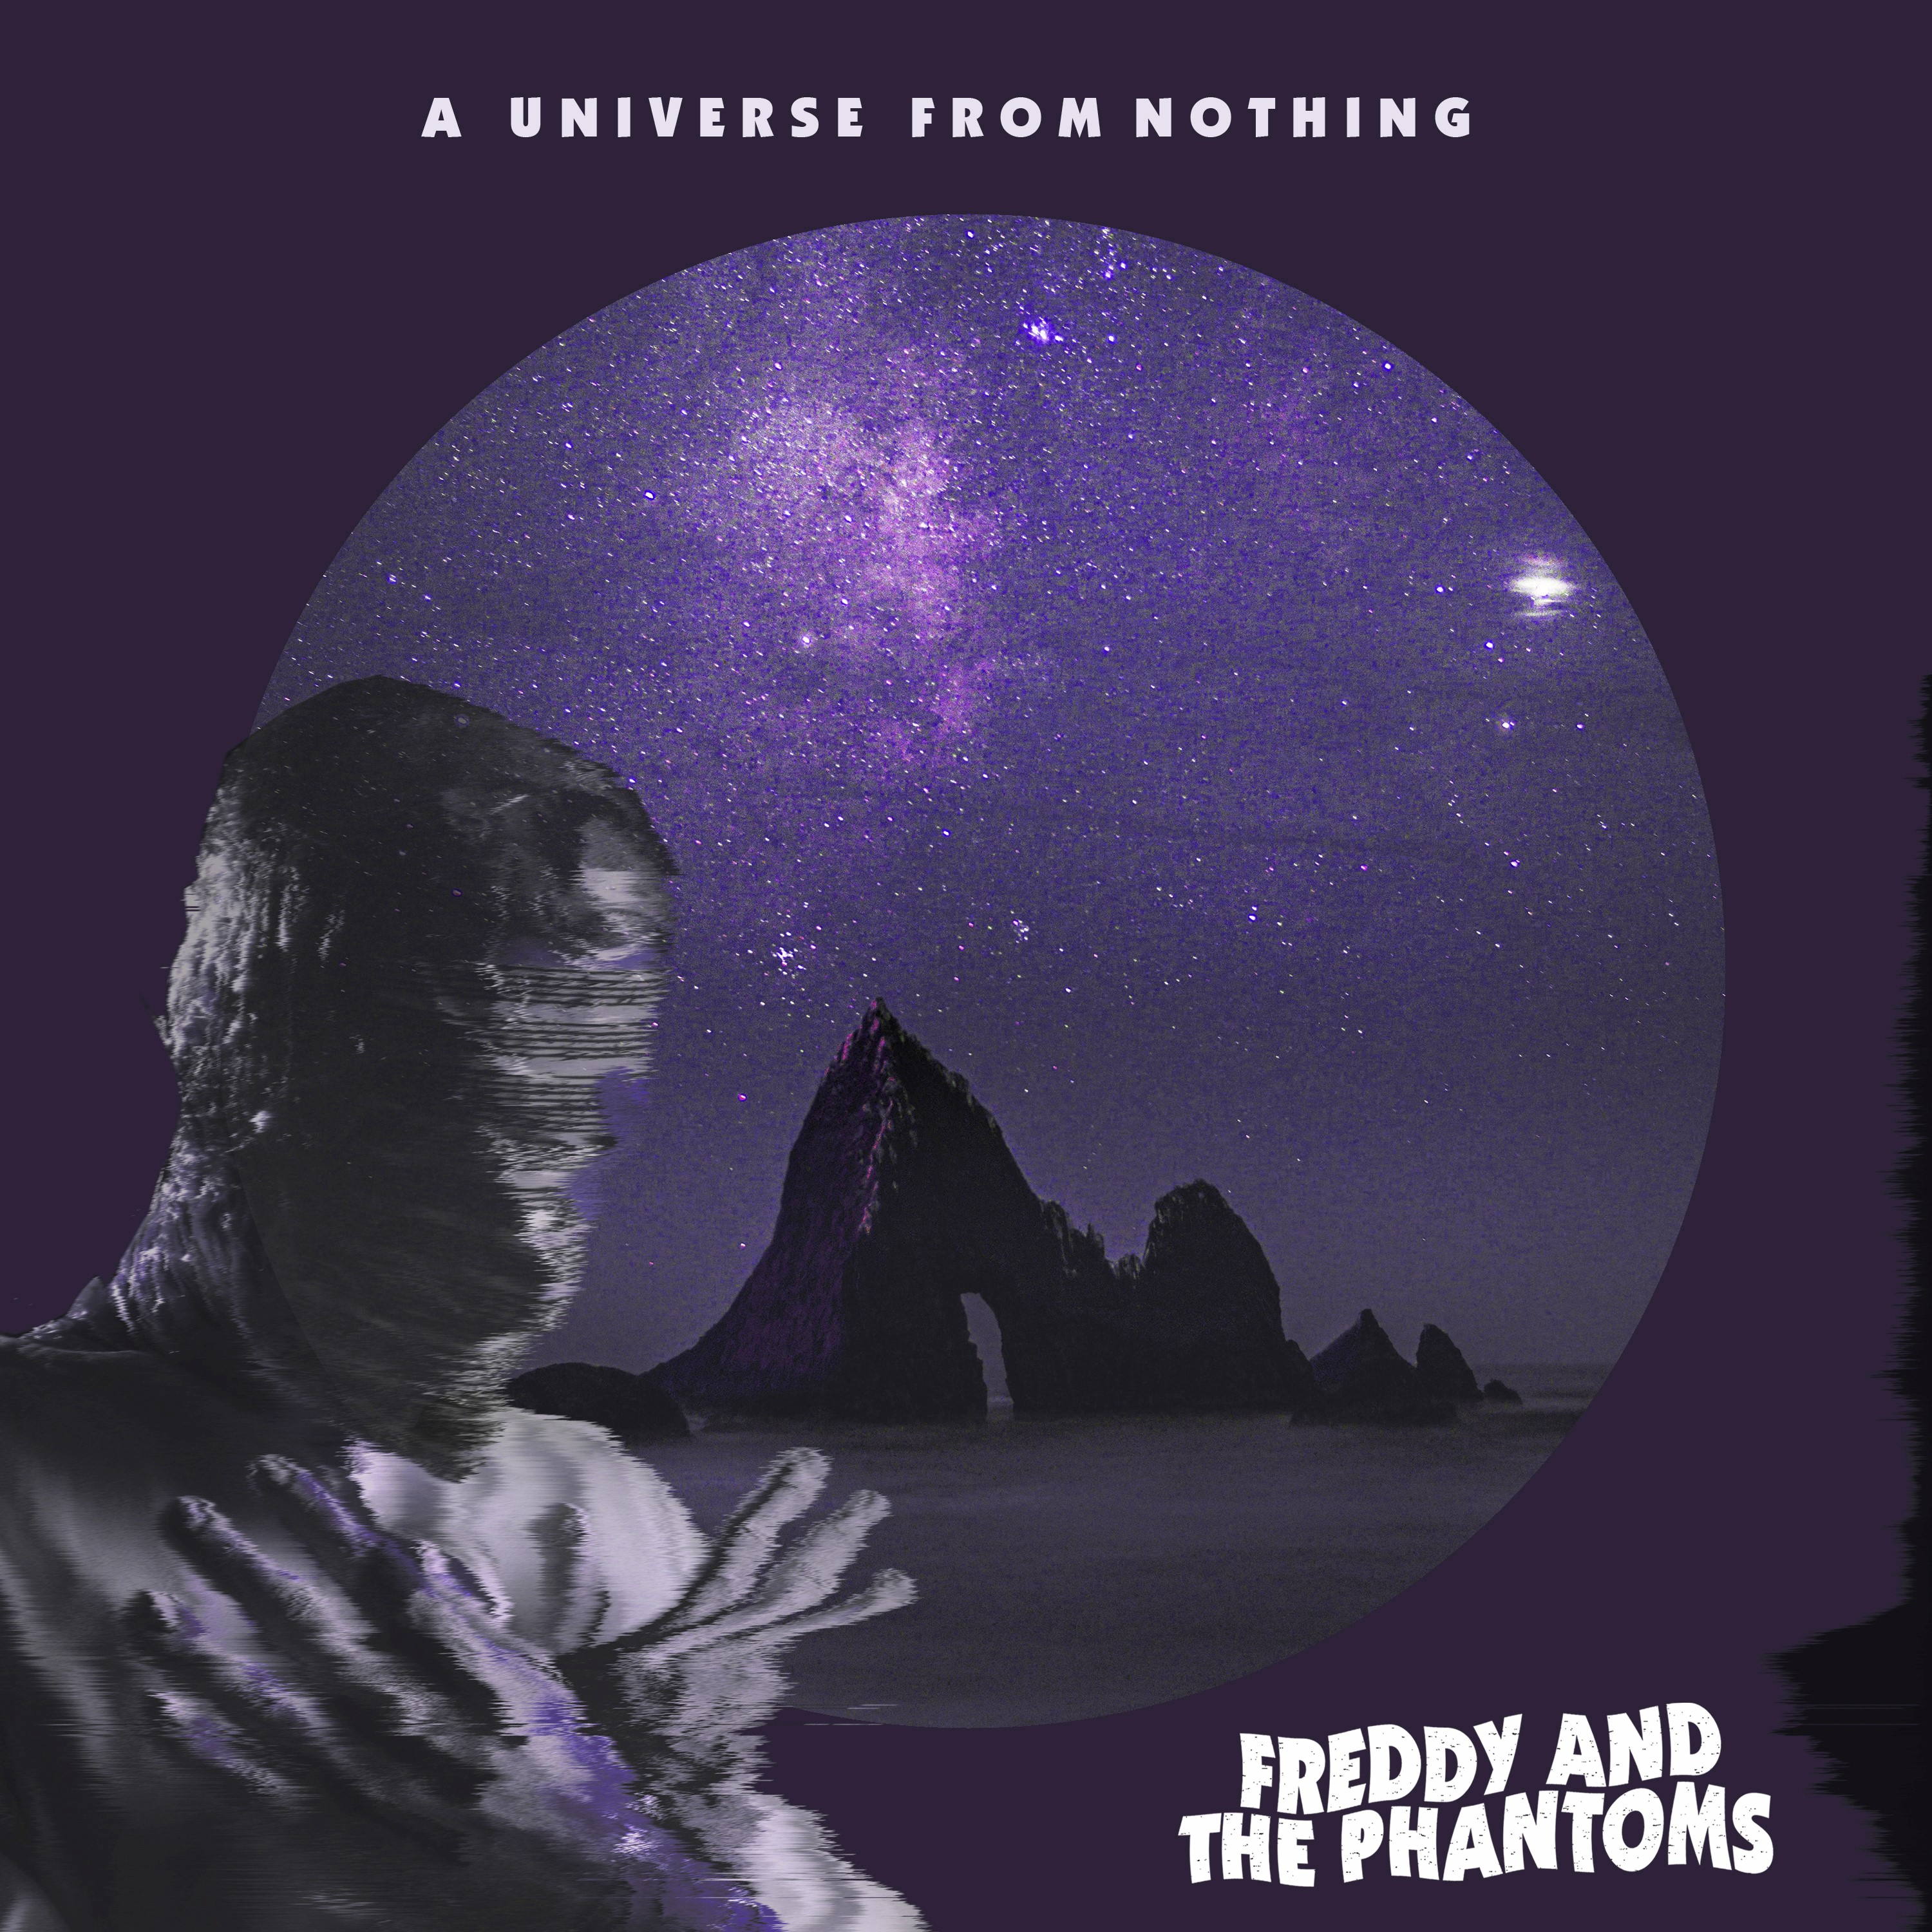 Freddy And The Phantoms – A Universe From Nothing (album)